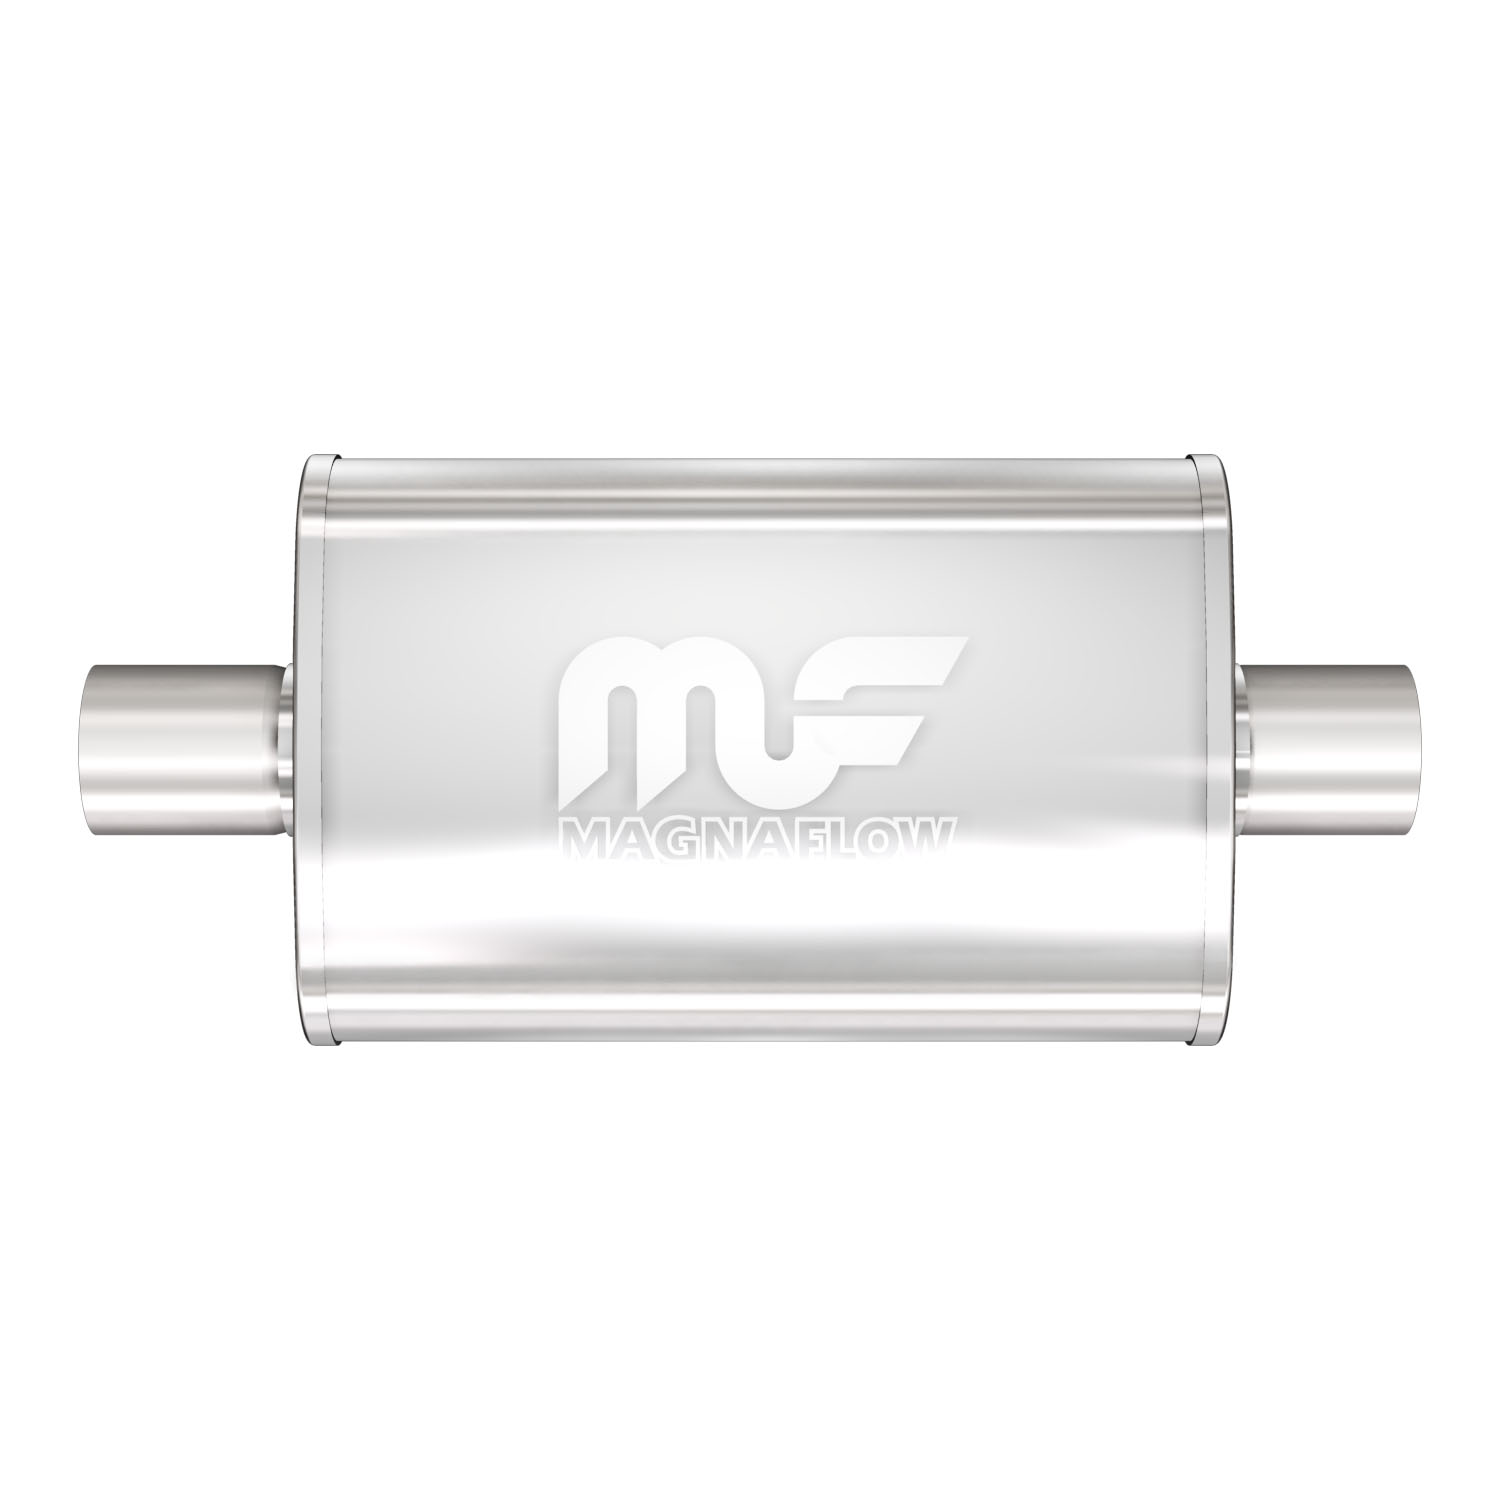 11246 Magnaflow Performance Exhaust Muffler 4 Inch x 9 Inch Oval